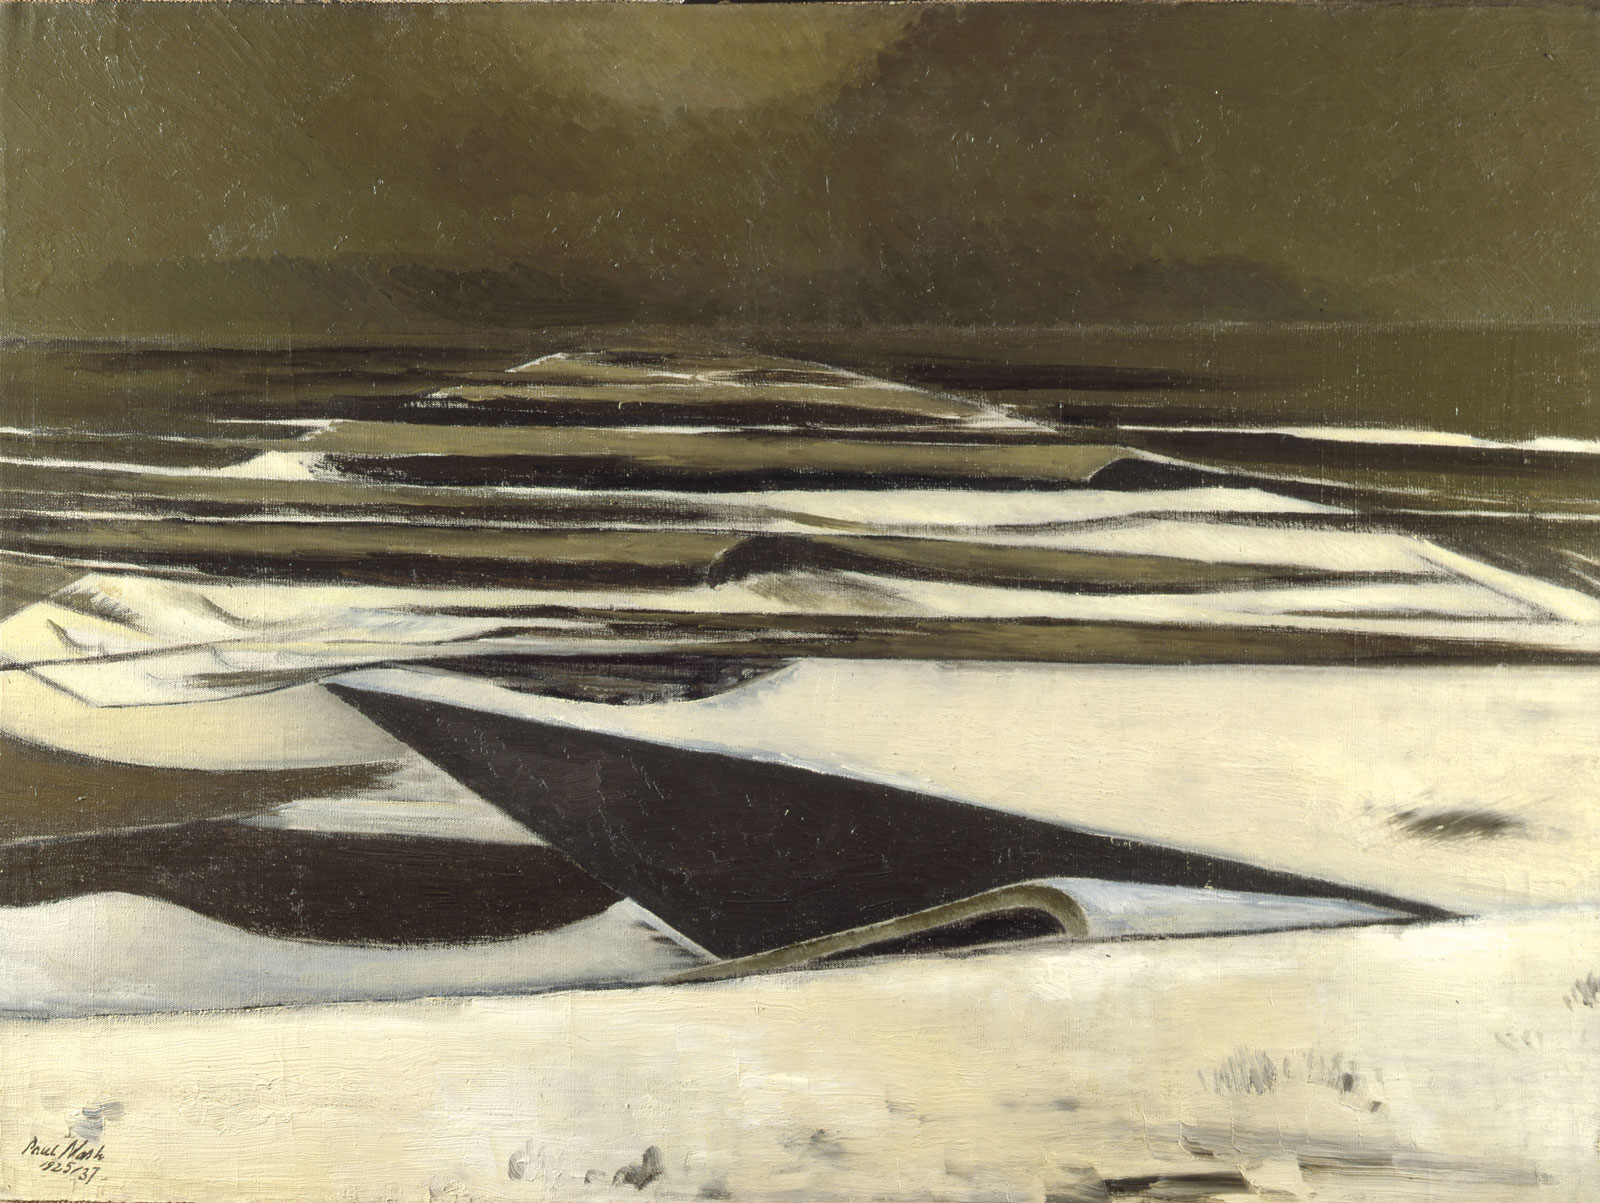 Paul Nash: Winter Sea, 1925-1937